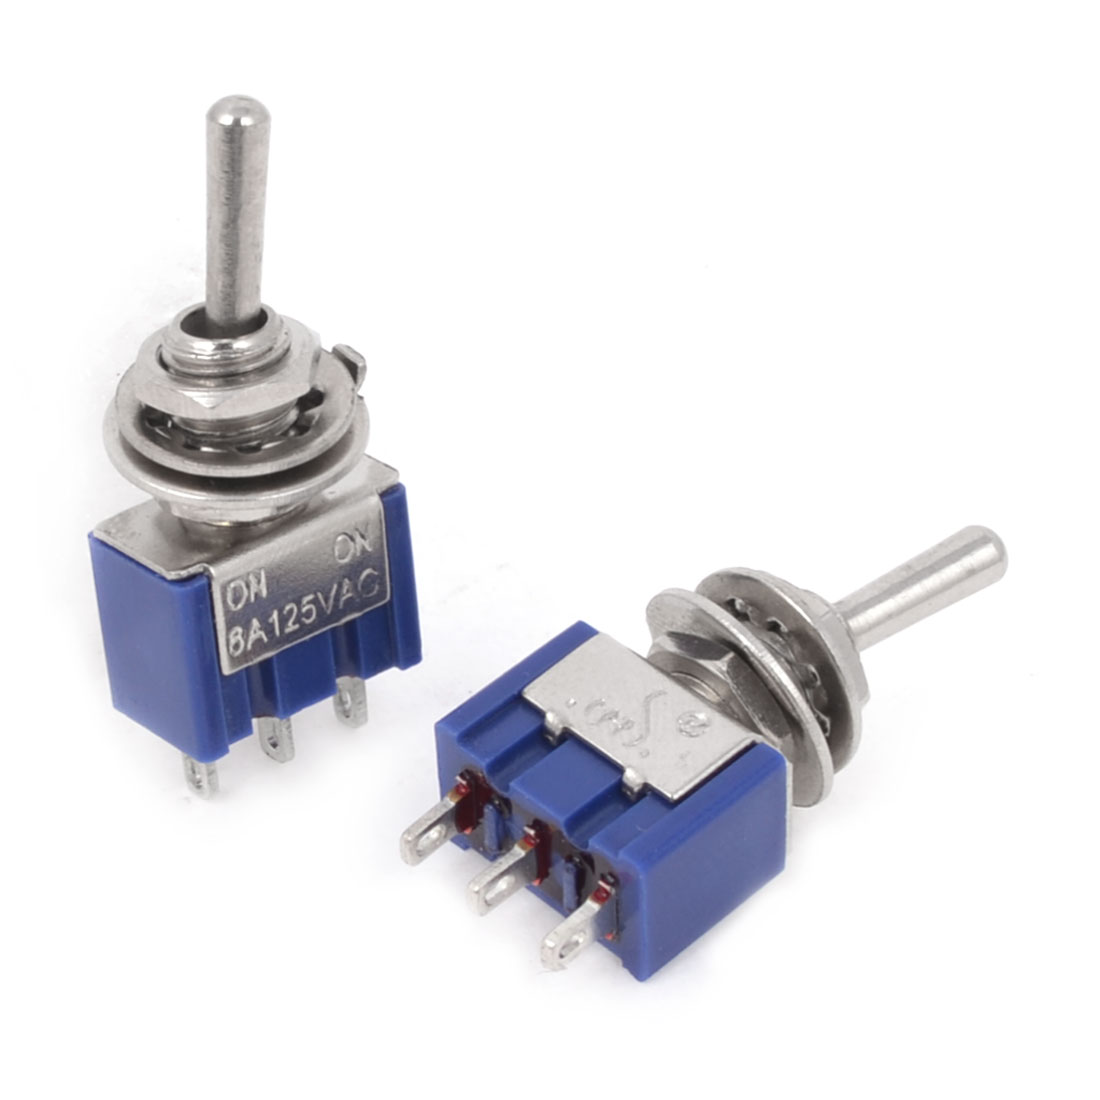 2 Pcs 2 Positions 3-Pin SPDT ON-ON Blue Mini Toggle Switch 6A AC 125V